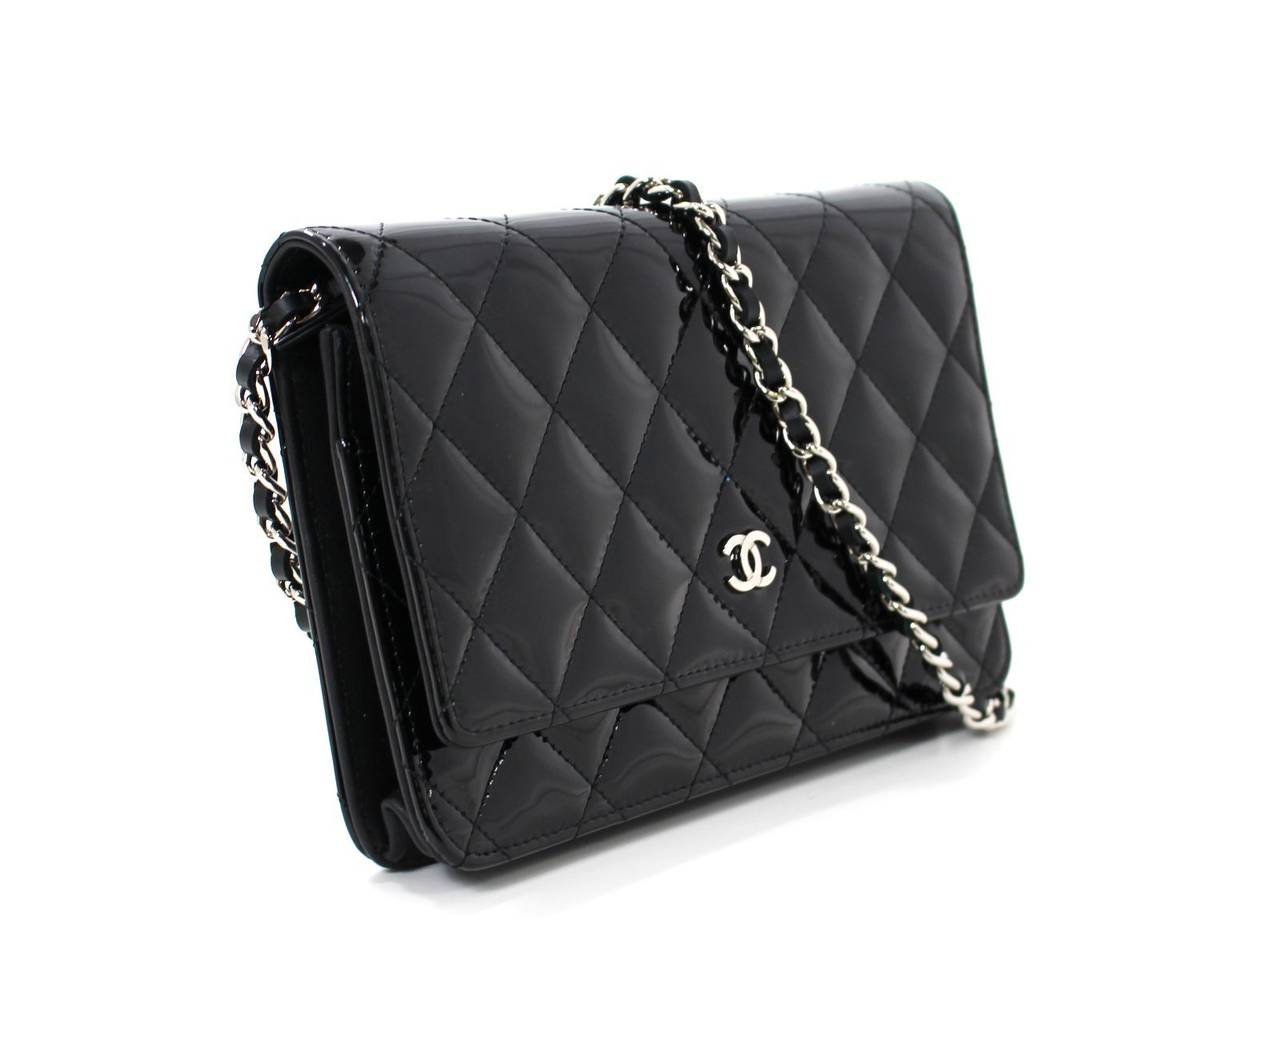 da596f15f144c8 Chanel Black Patent Leather Wallet On Chain | Stanford Center for ...